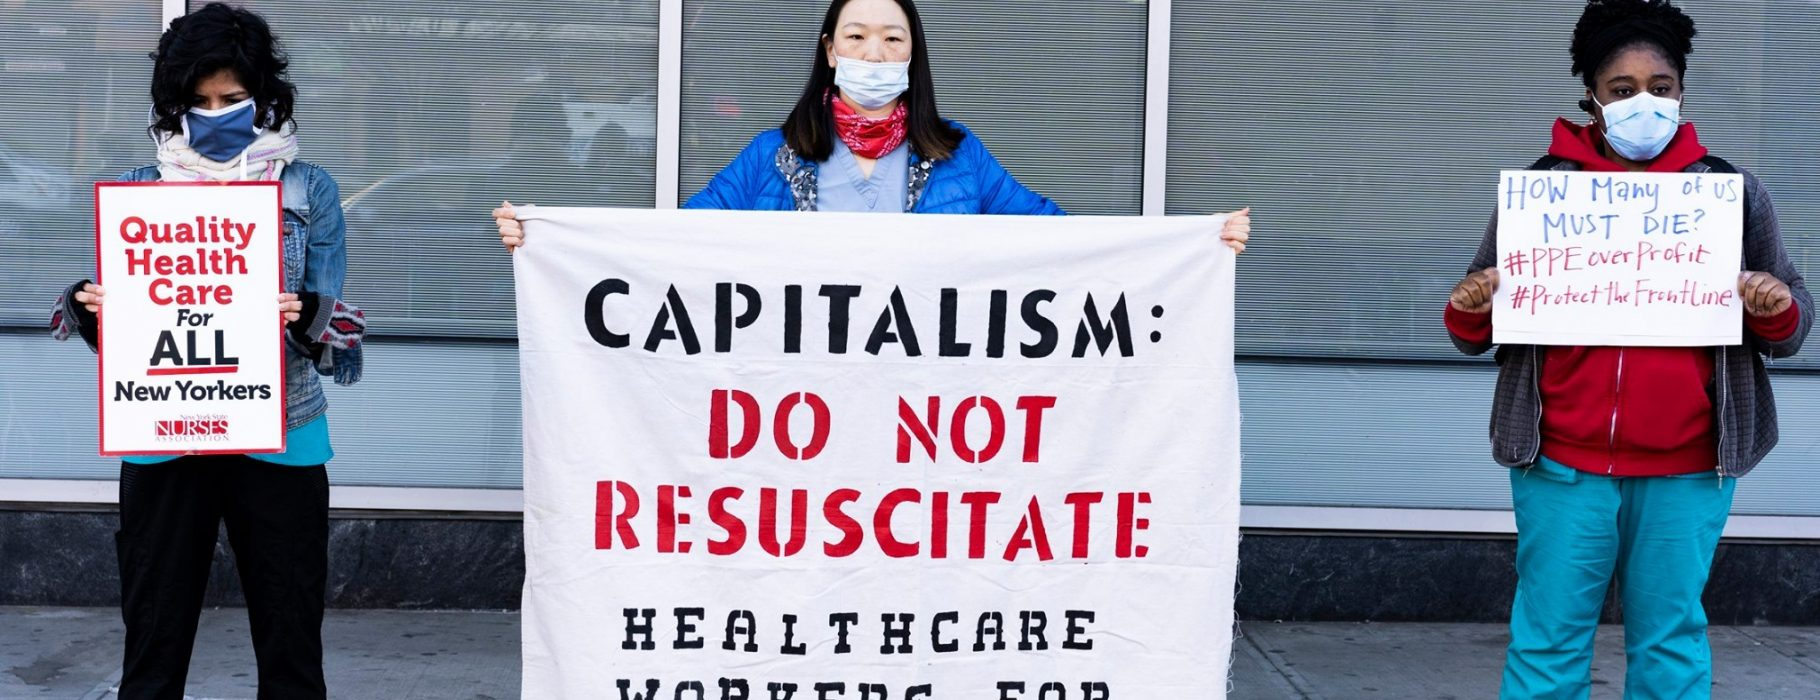 Healthcare workers in masks hold up three protest signs and banners: Quality Health Care for All New Yorkers, Captialism: Do Not Resucitate: Healthcare Workers for Socialism, How Many of us must die? #PPEoverprofit #ProtecttheFrontLine